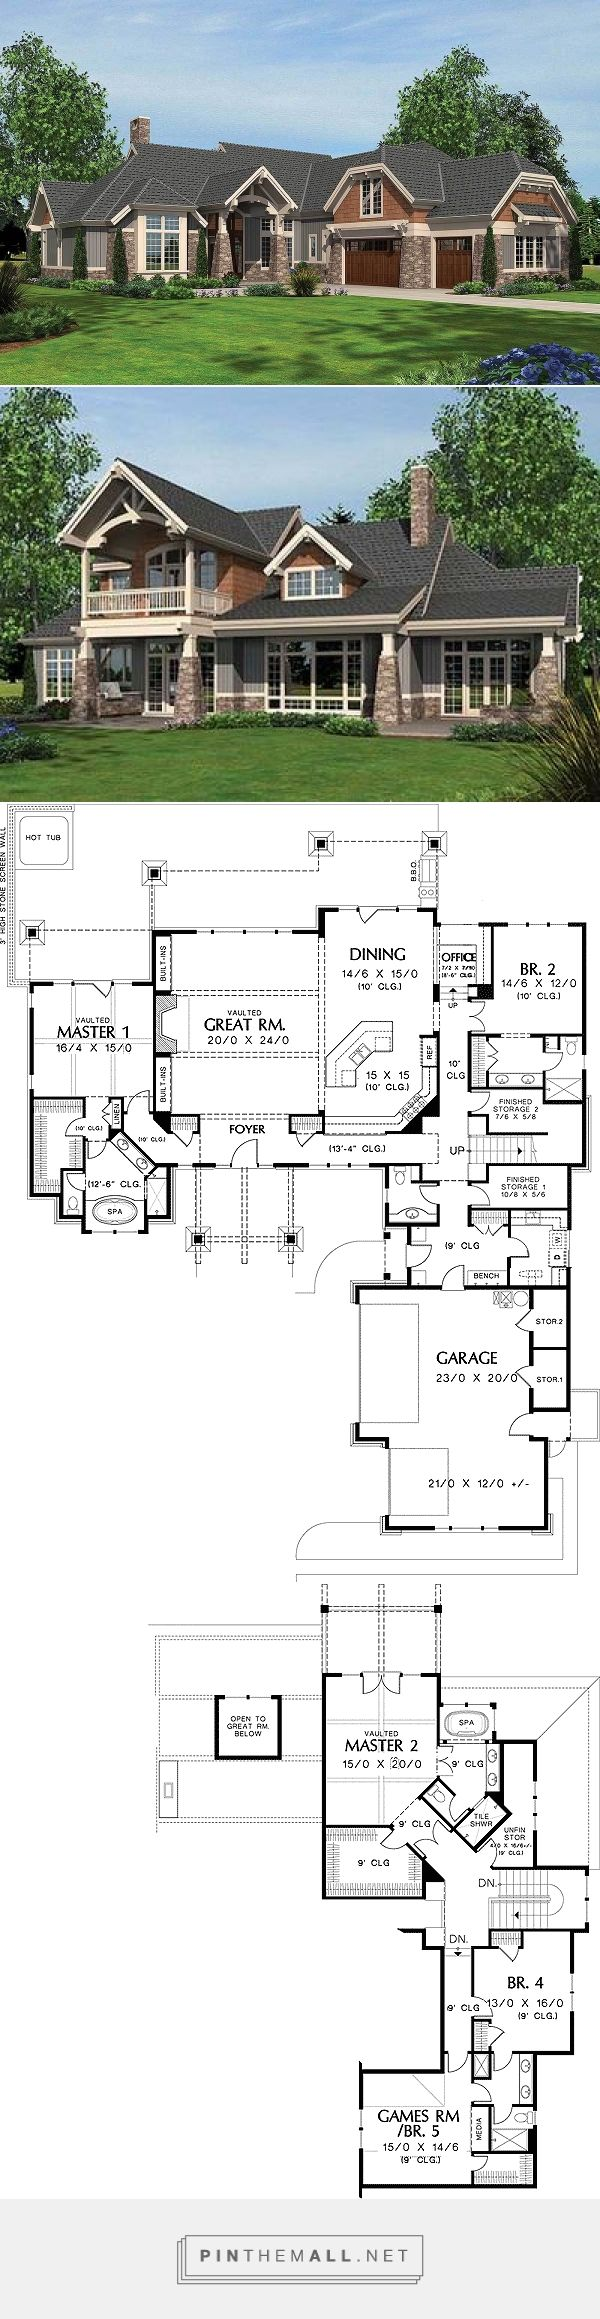 4318 sq. ft arts and crafts design with two master suites.